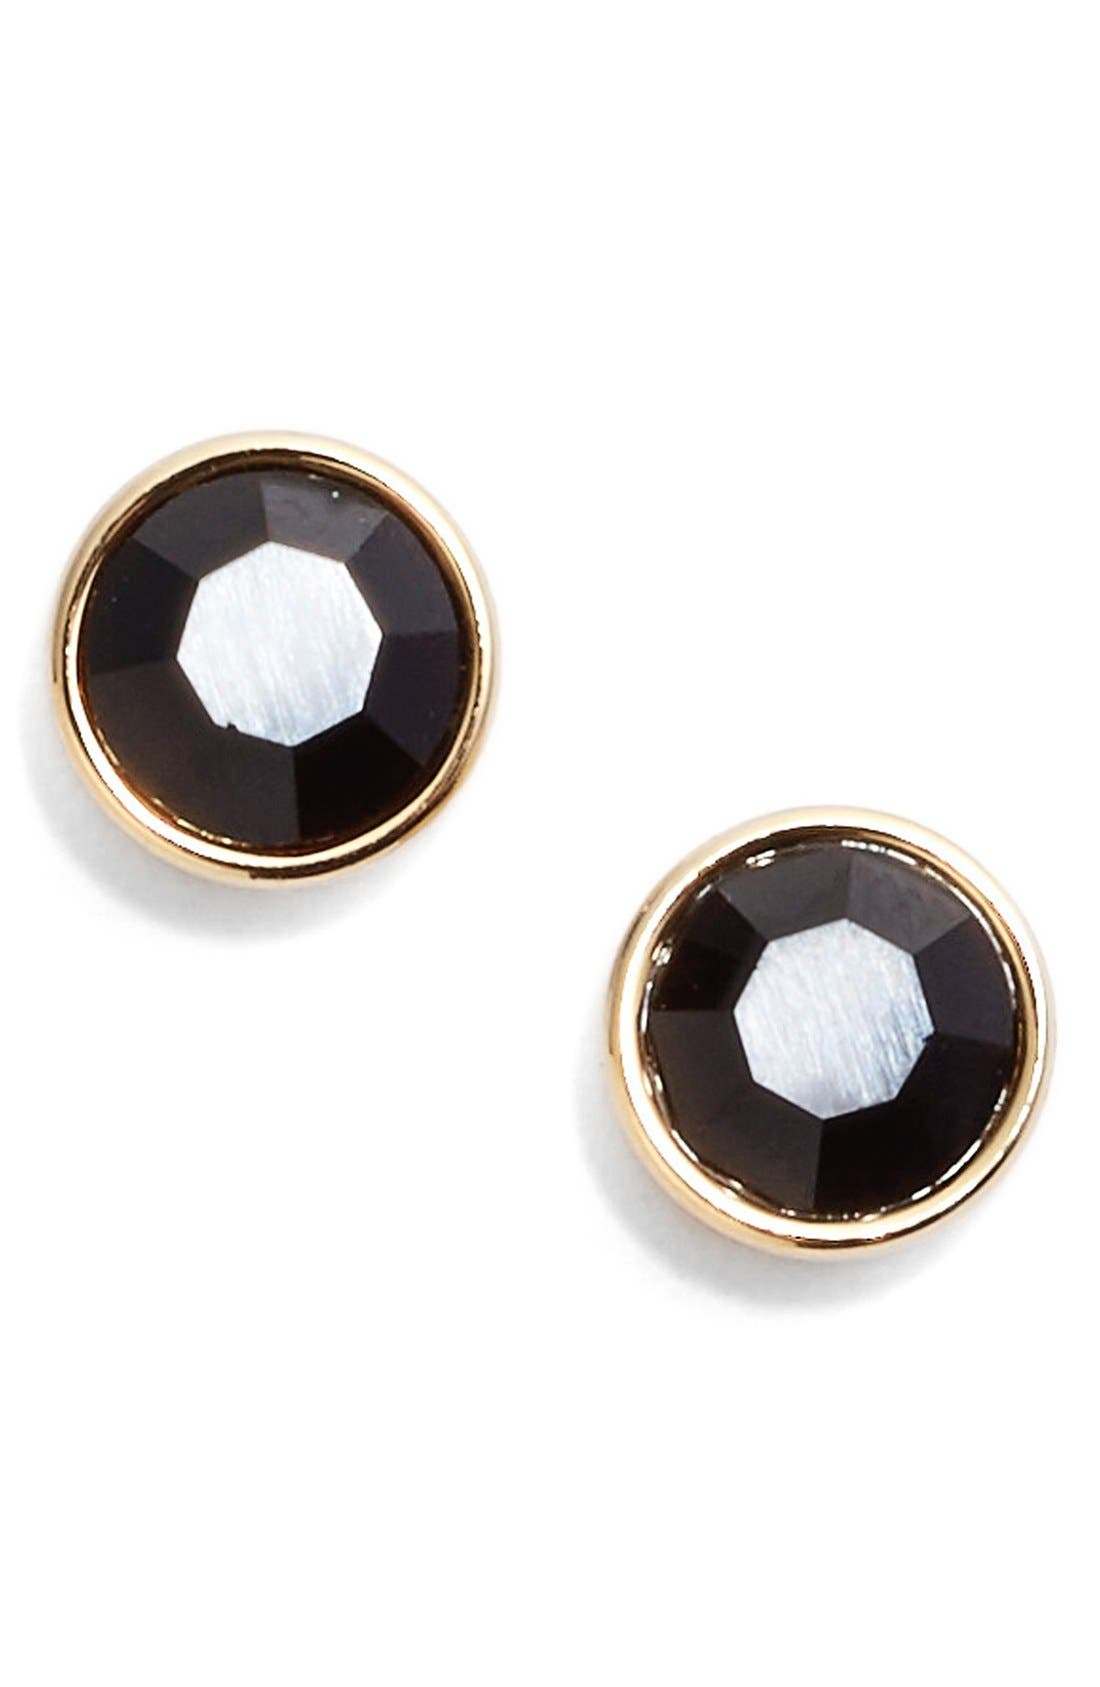 Alternate Image 1 Selected - kate spade new york 'forever' stud earrings